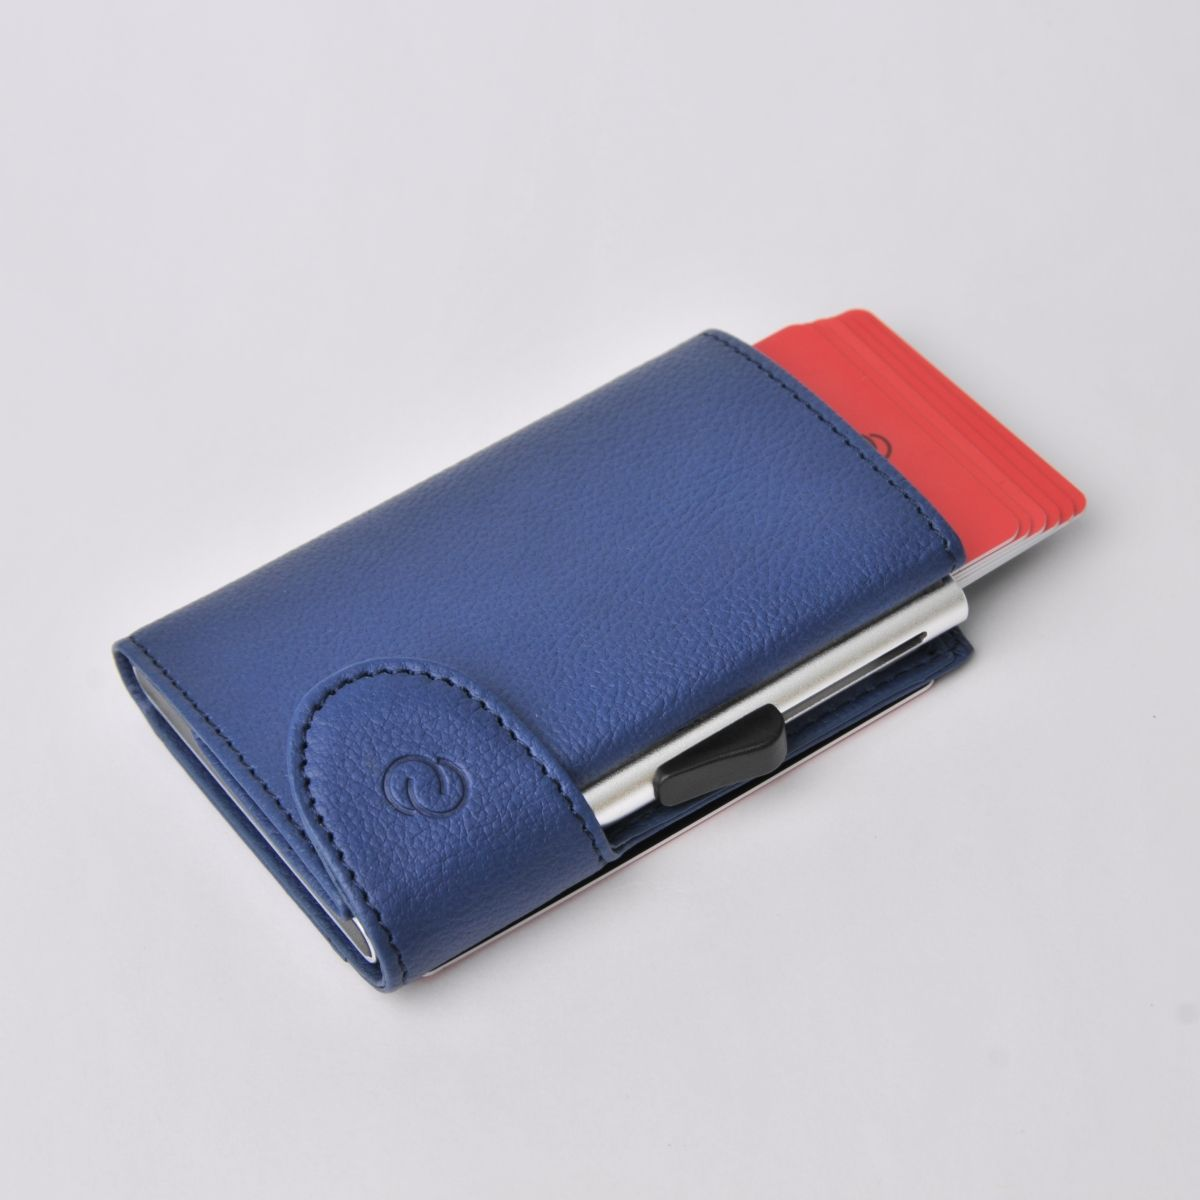 C-Secure Aluminum Card Holder with Genuine Leather - Blue